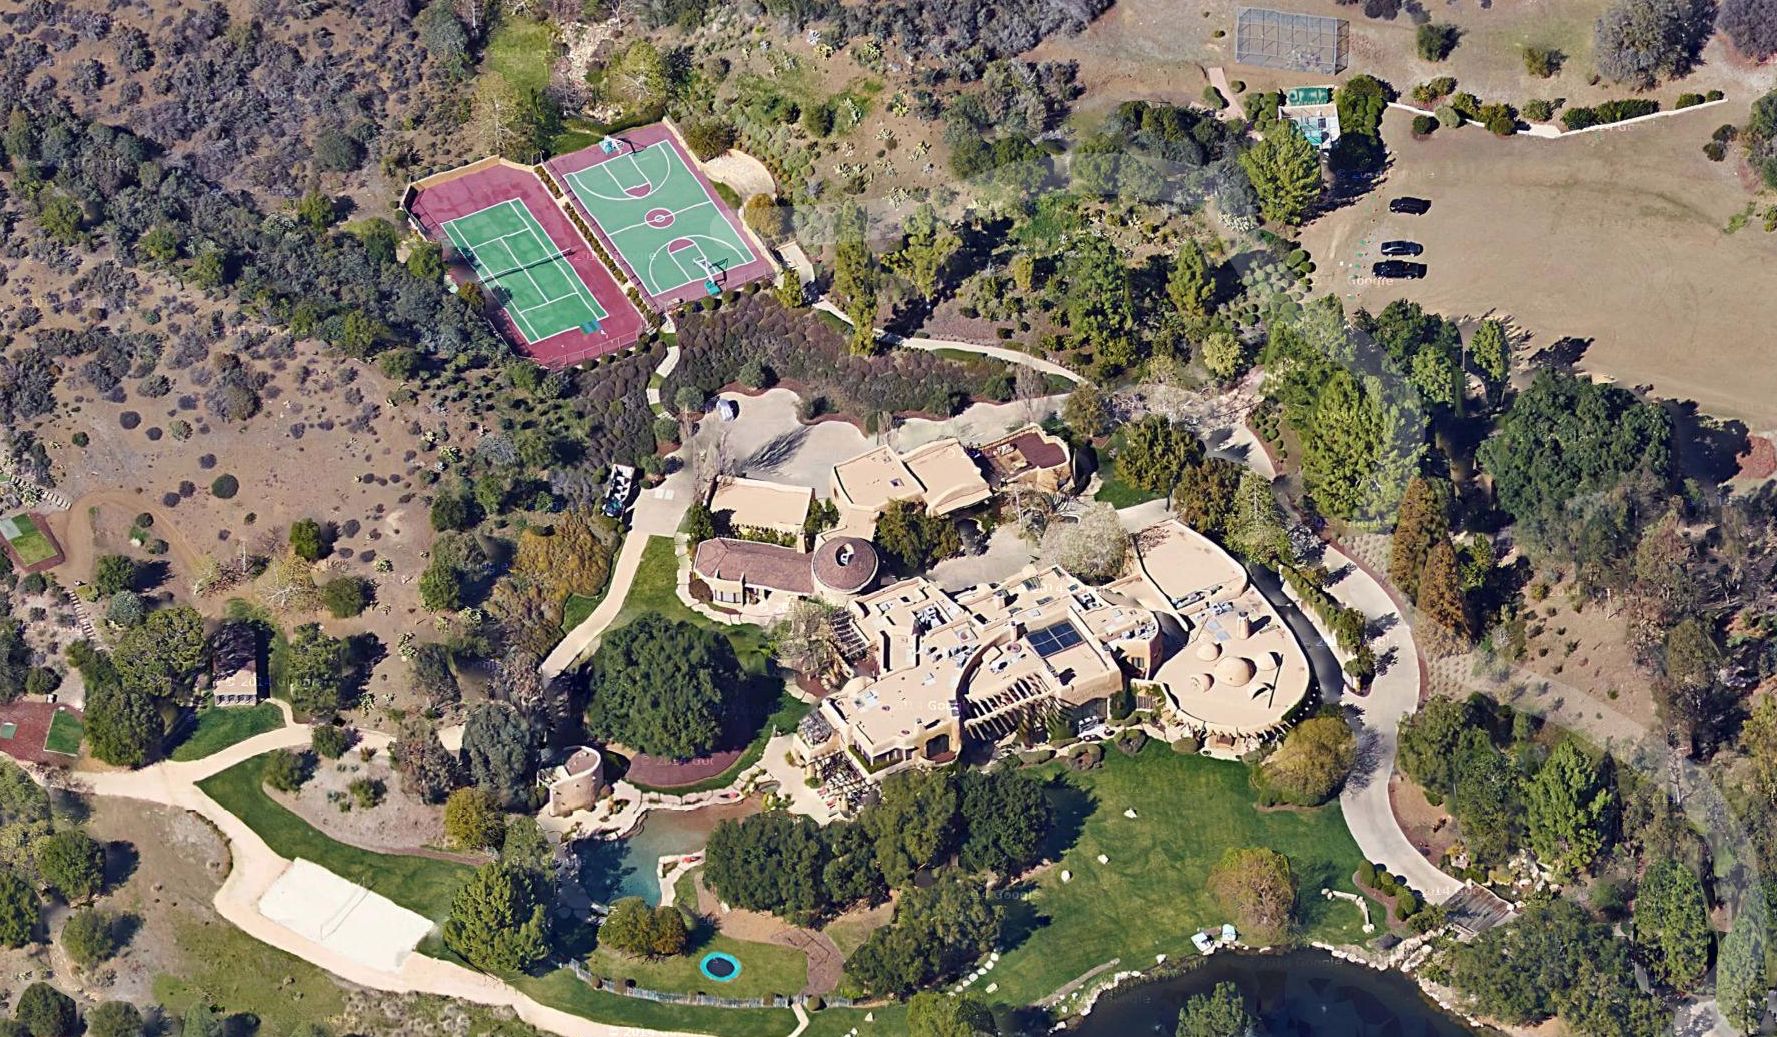 The sprawling Calabasas property is a sight to behold. Image: Google Earth